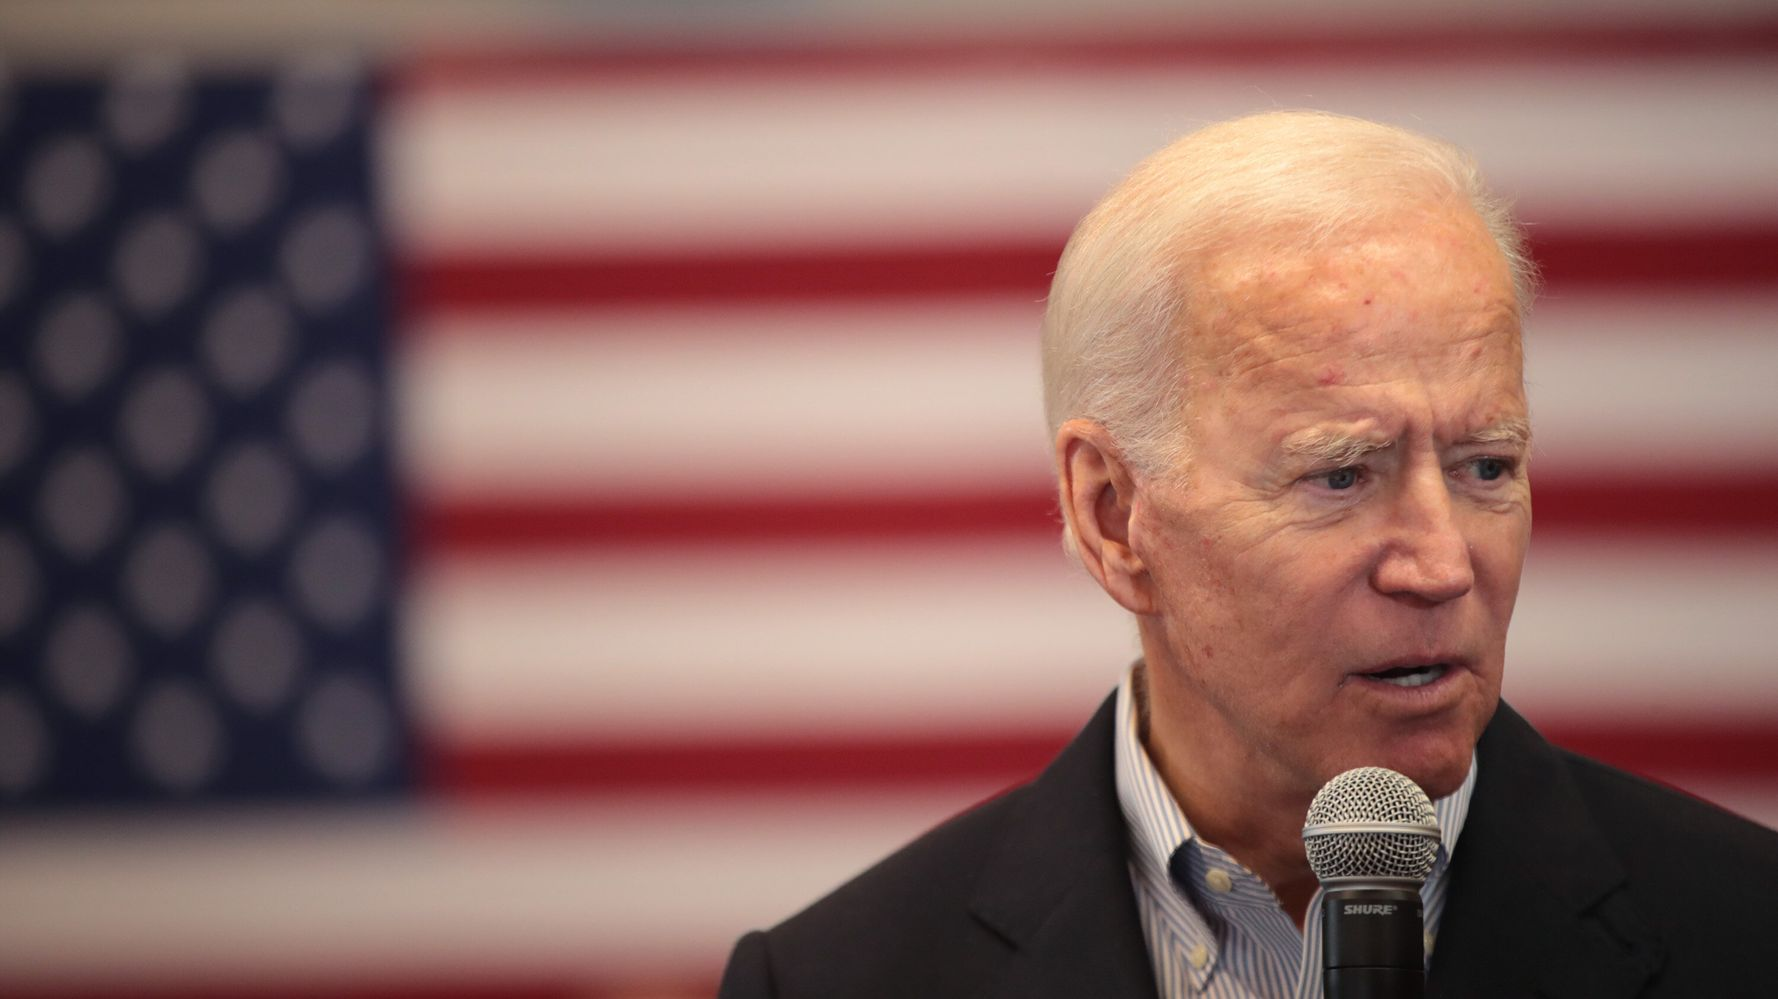 Westlake Legal Group 5de66dc01f0000f431df0448 Biden Doubts Enthusiasm For Warren In Iowa: 'Give Me A Break'